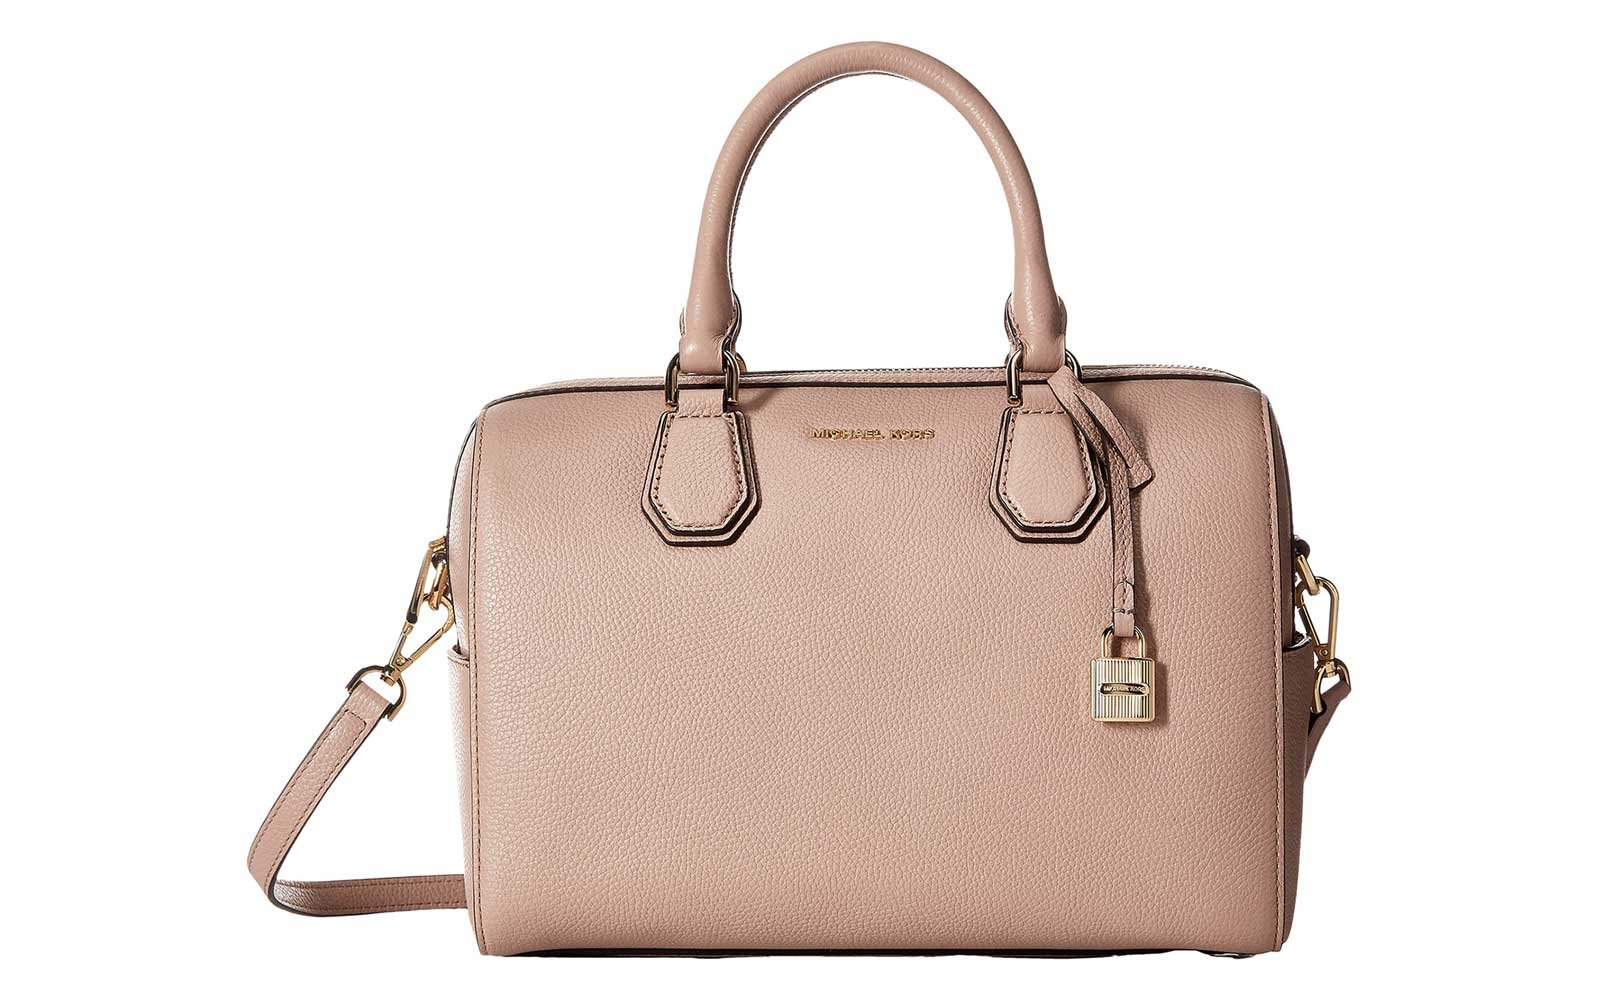 Michael Kors Leather Duffel Bag for Travel